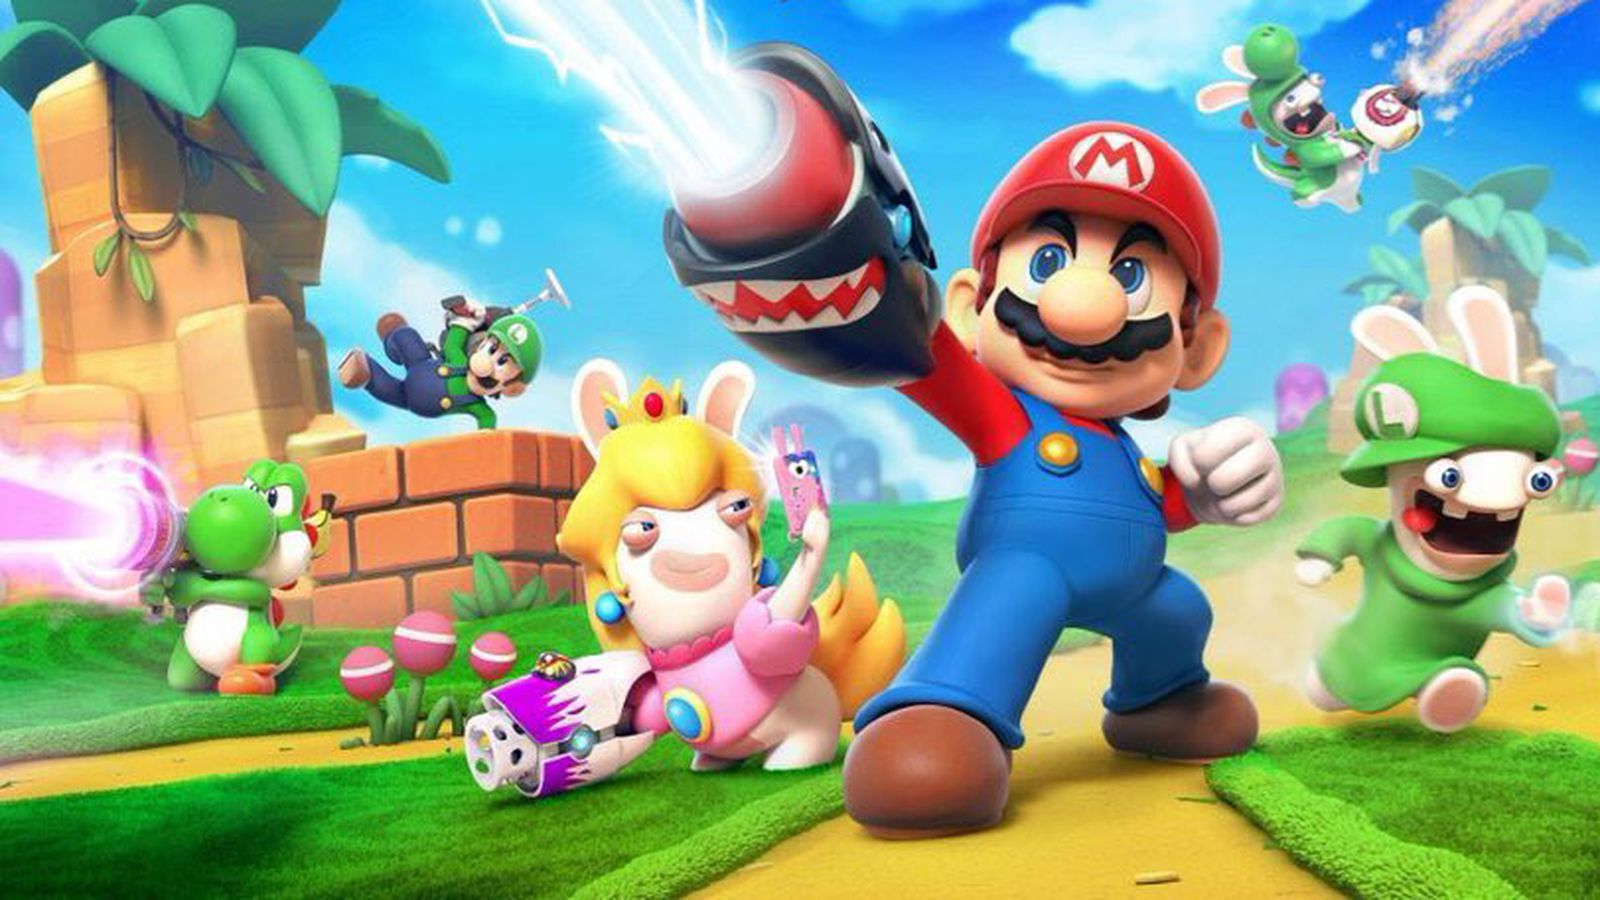 More Mario and Rabbids RPG details hint at gameplay